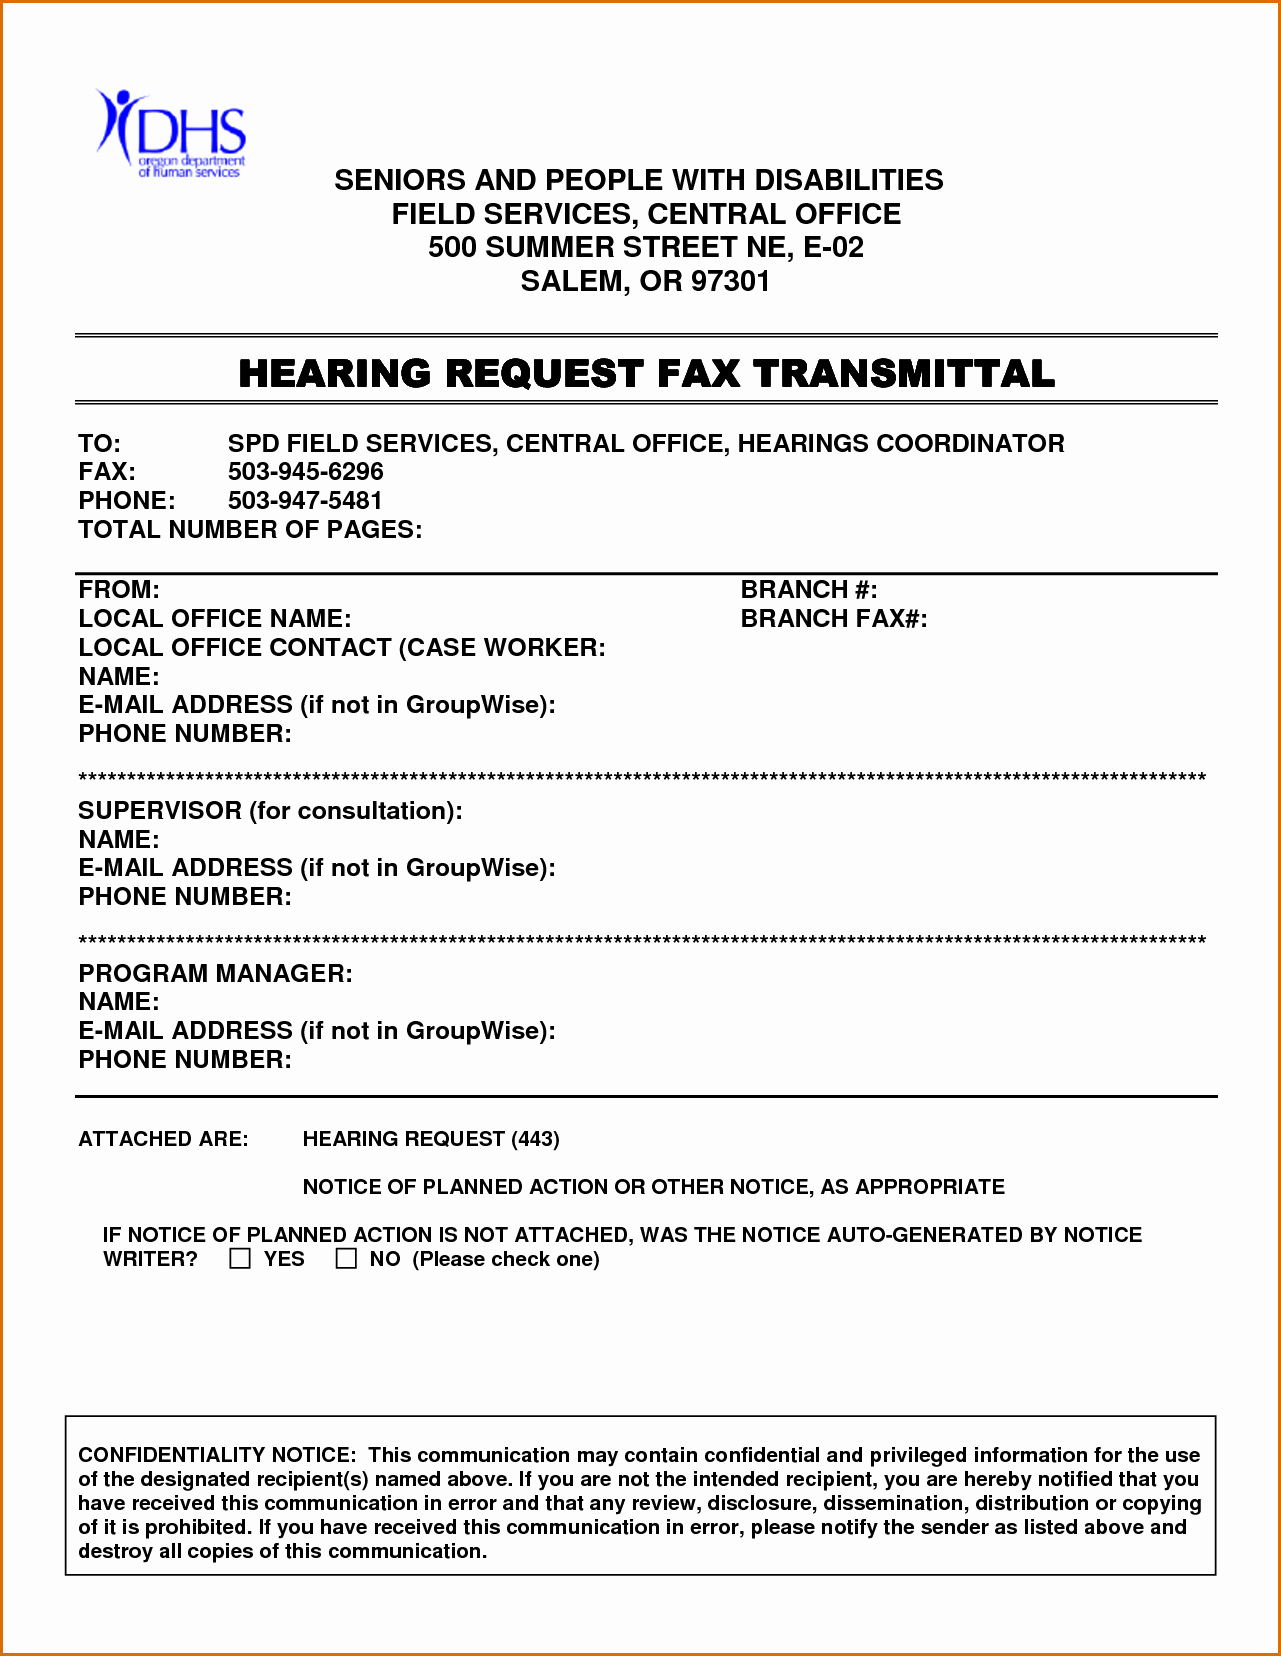 Transmittal form Sample Awesome 6 Fax Transmittal Template